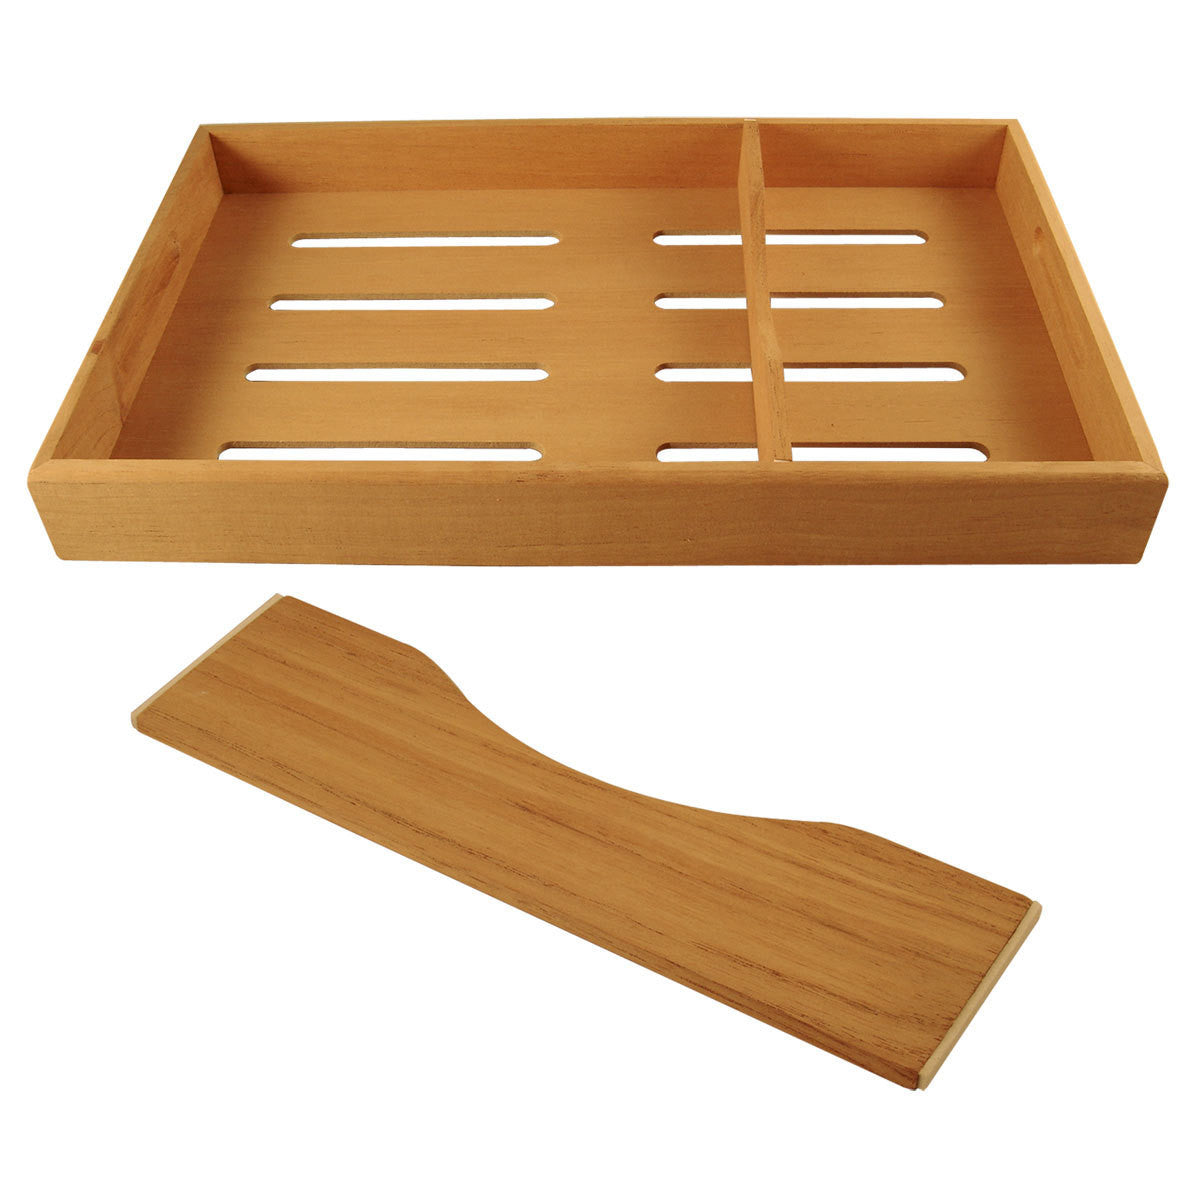 Cedar Tray Divider for Arte Original Humidor - Humidors Wholesaler